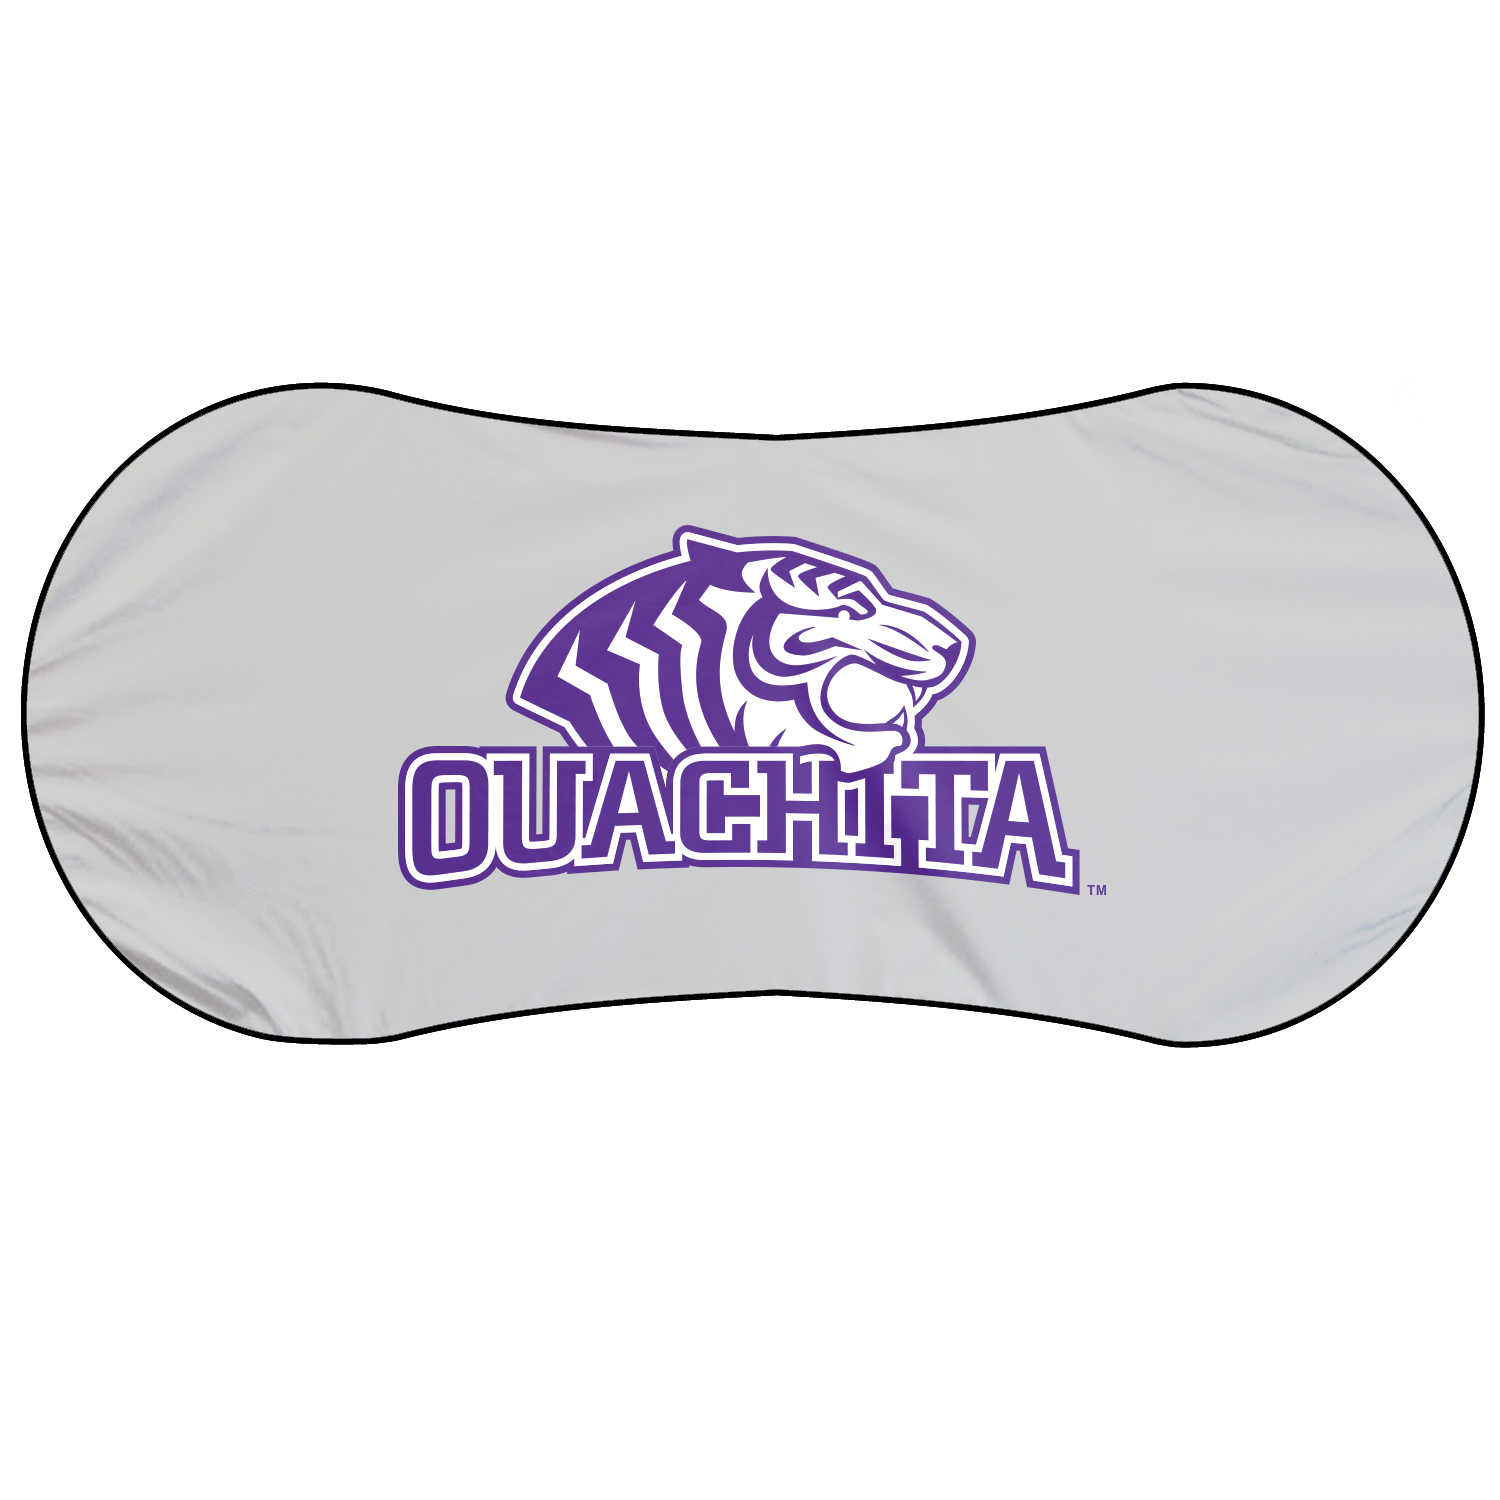 OUACHITA AUTO WINDSHIELD SUNSHADE